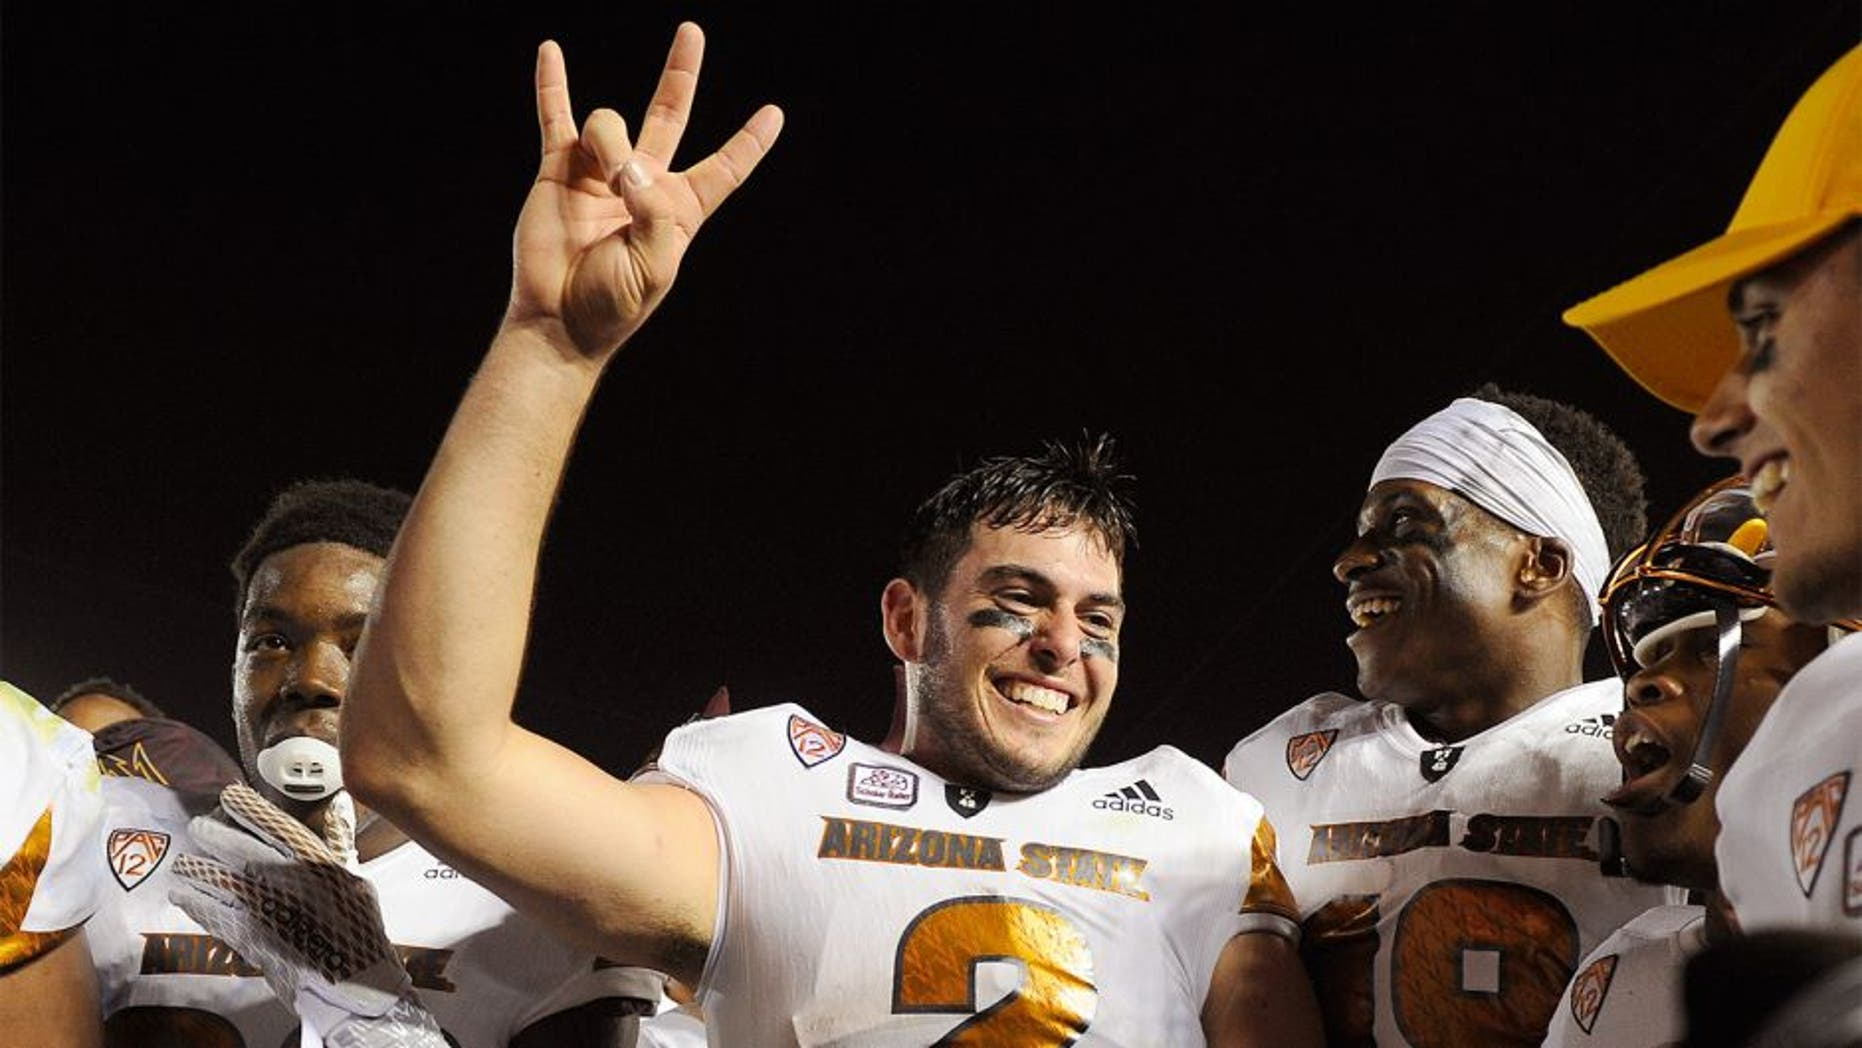 PASADENA, CA - OCTOBER 3: Quarterback Mike Bercovici #2 of the Arizona State Sun Devils and teammate celebrate the upset win over UCLA Bruins, 38-23, at the Rose Bowl October 3, 2015, in Pasadena, California. (Photo by Kevork Djansezian/Getty Images)